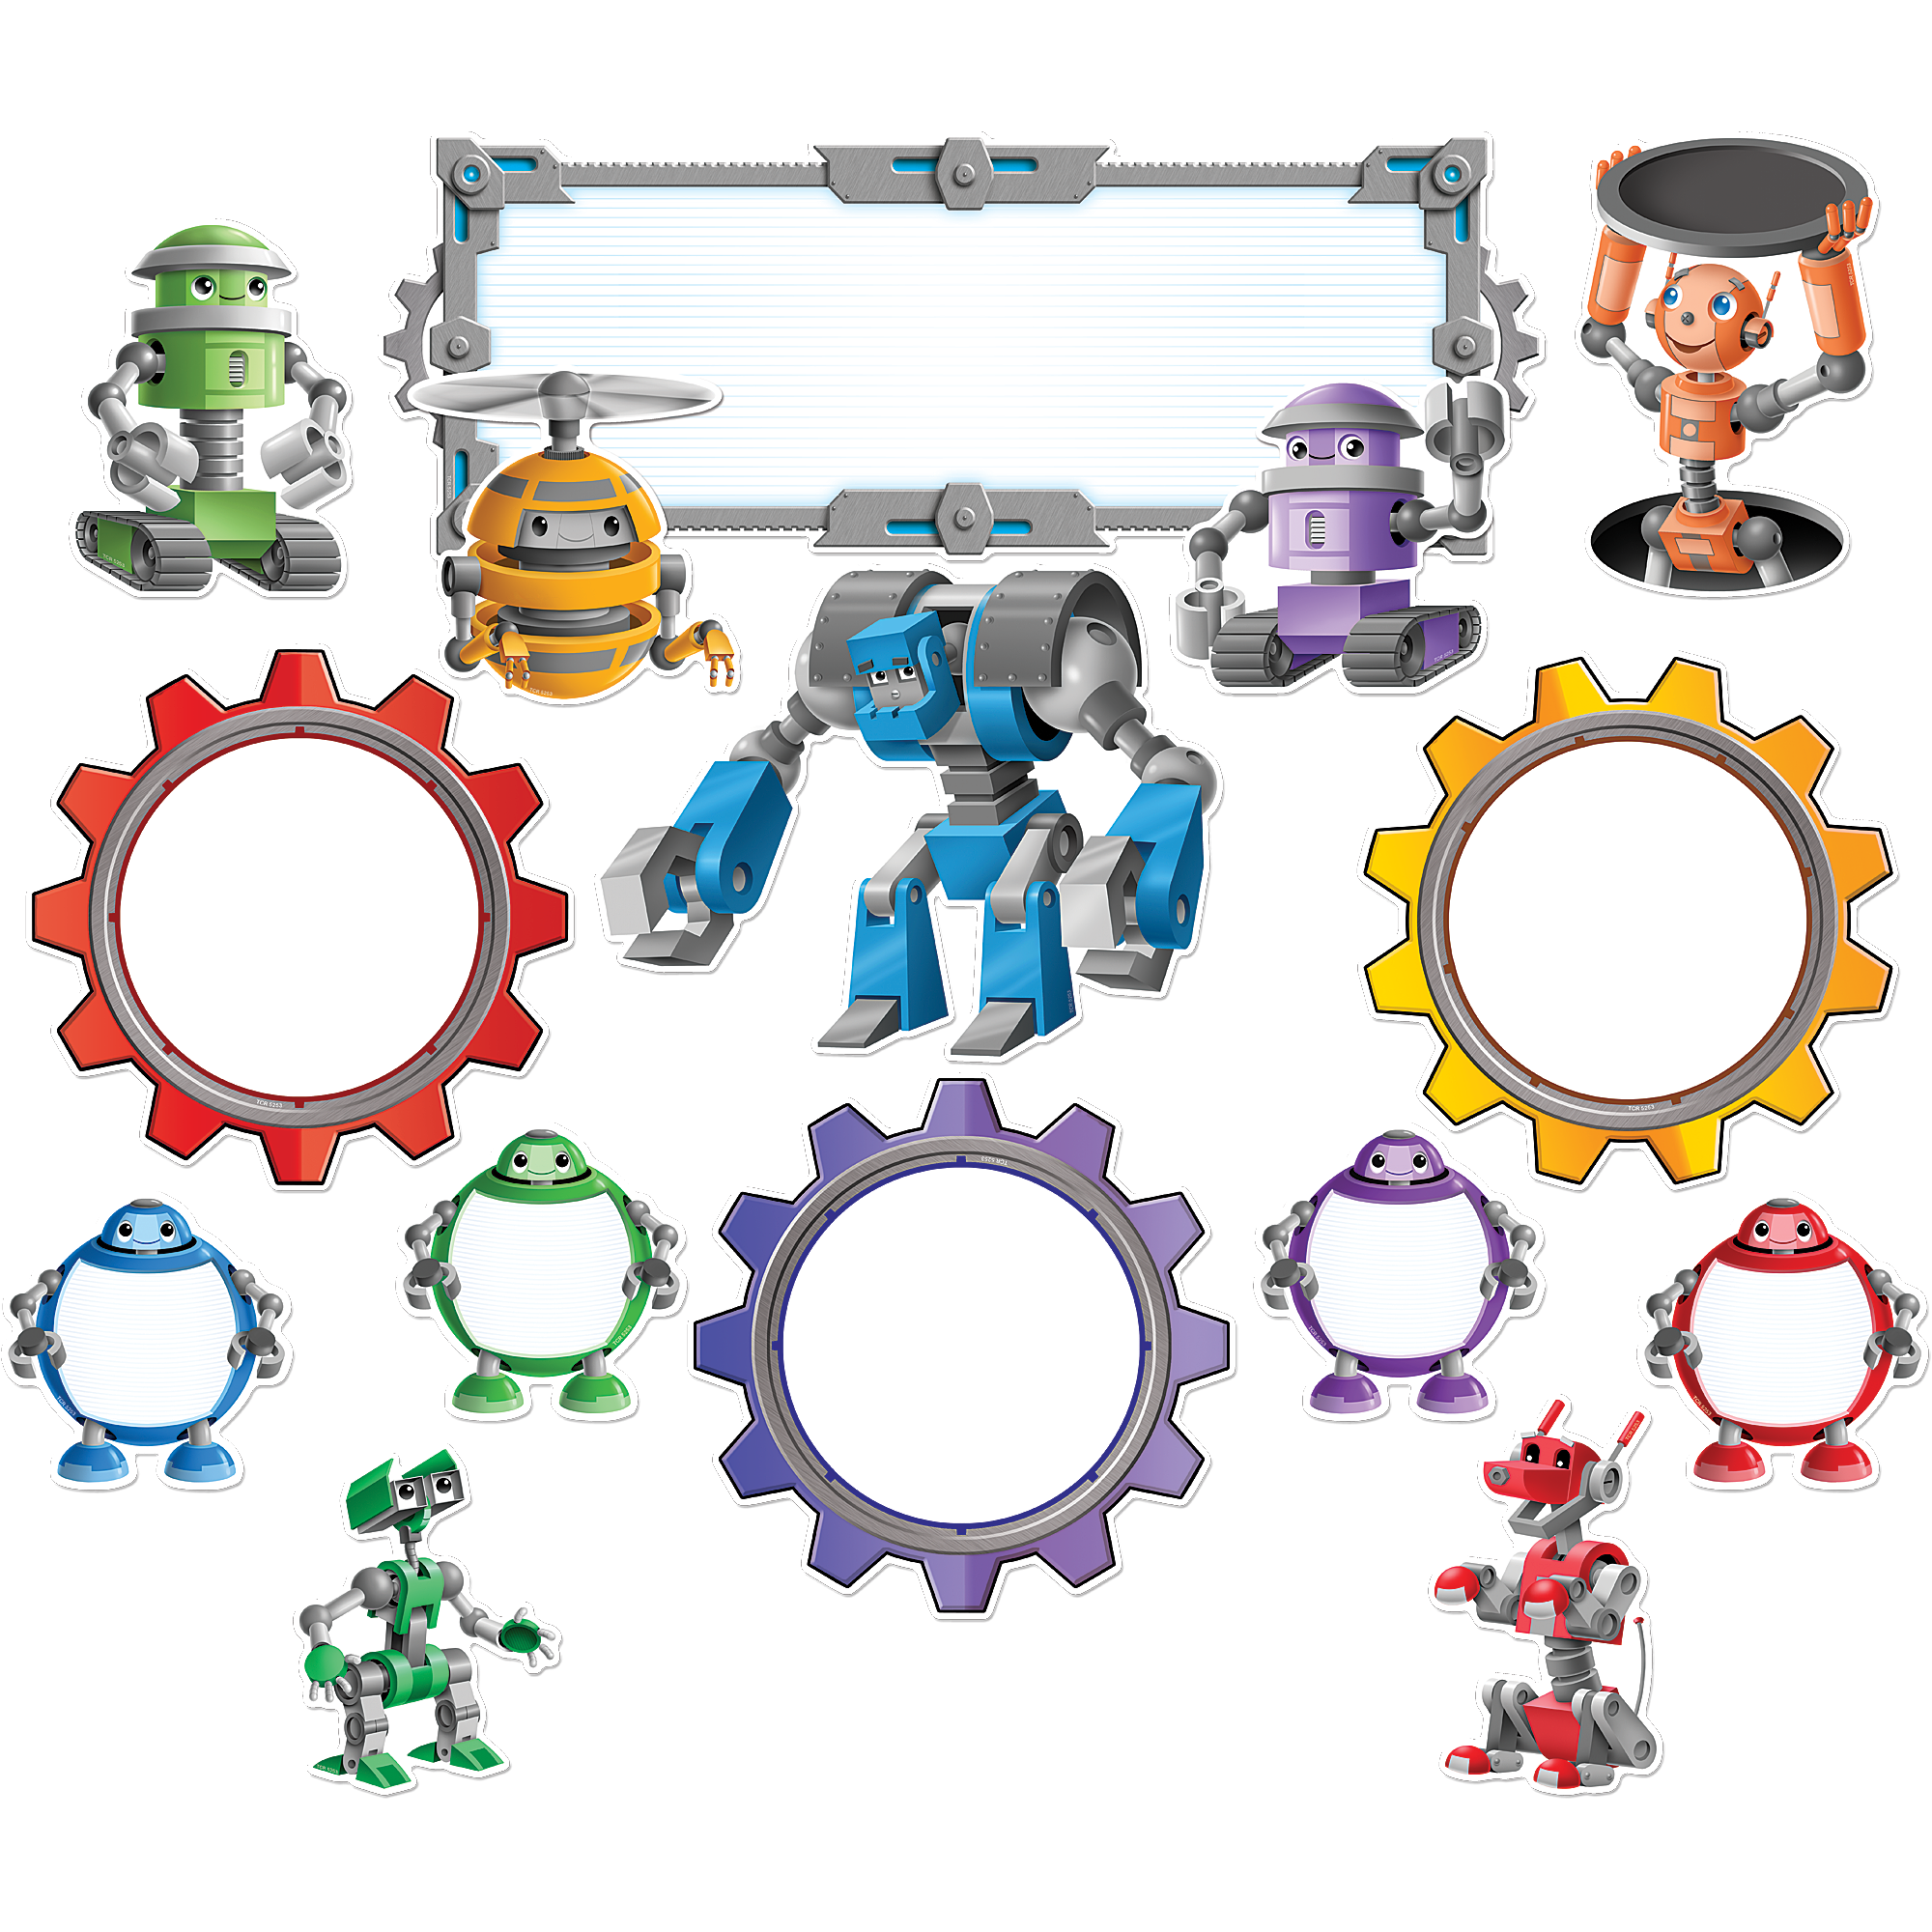 image free download Bulletin clipart info board. Robots display set school